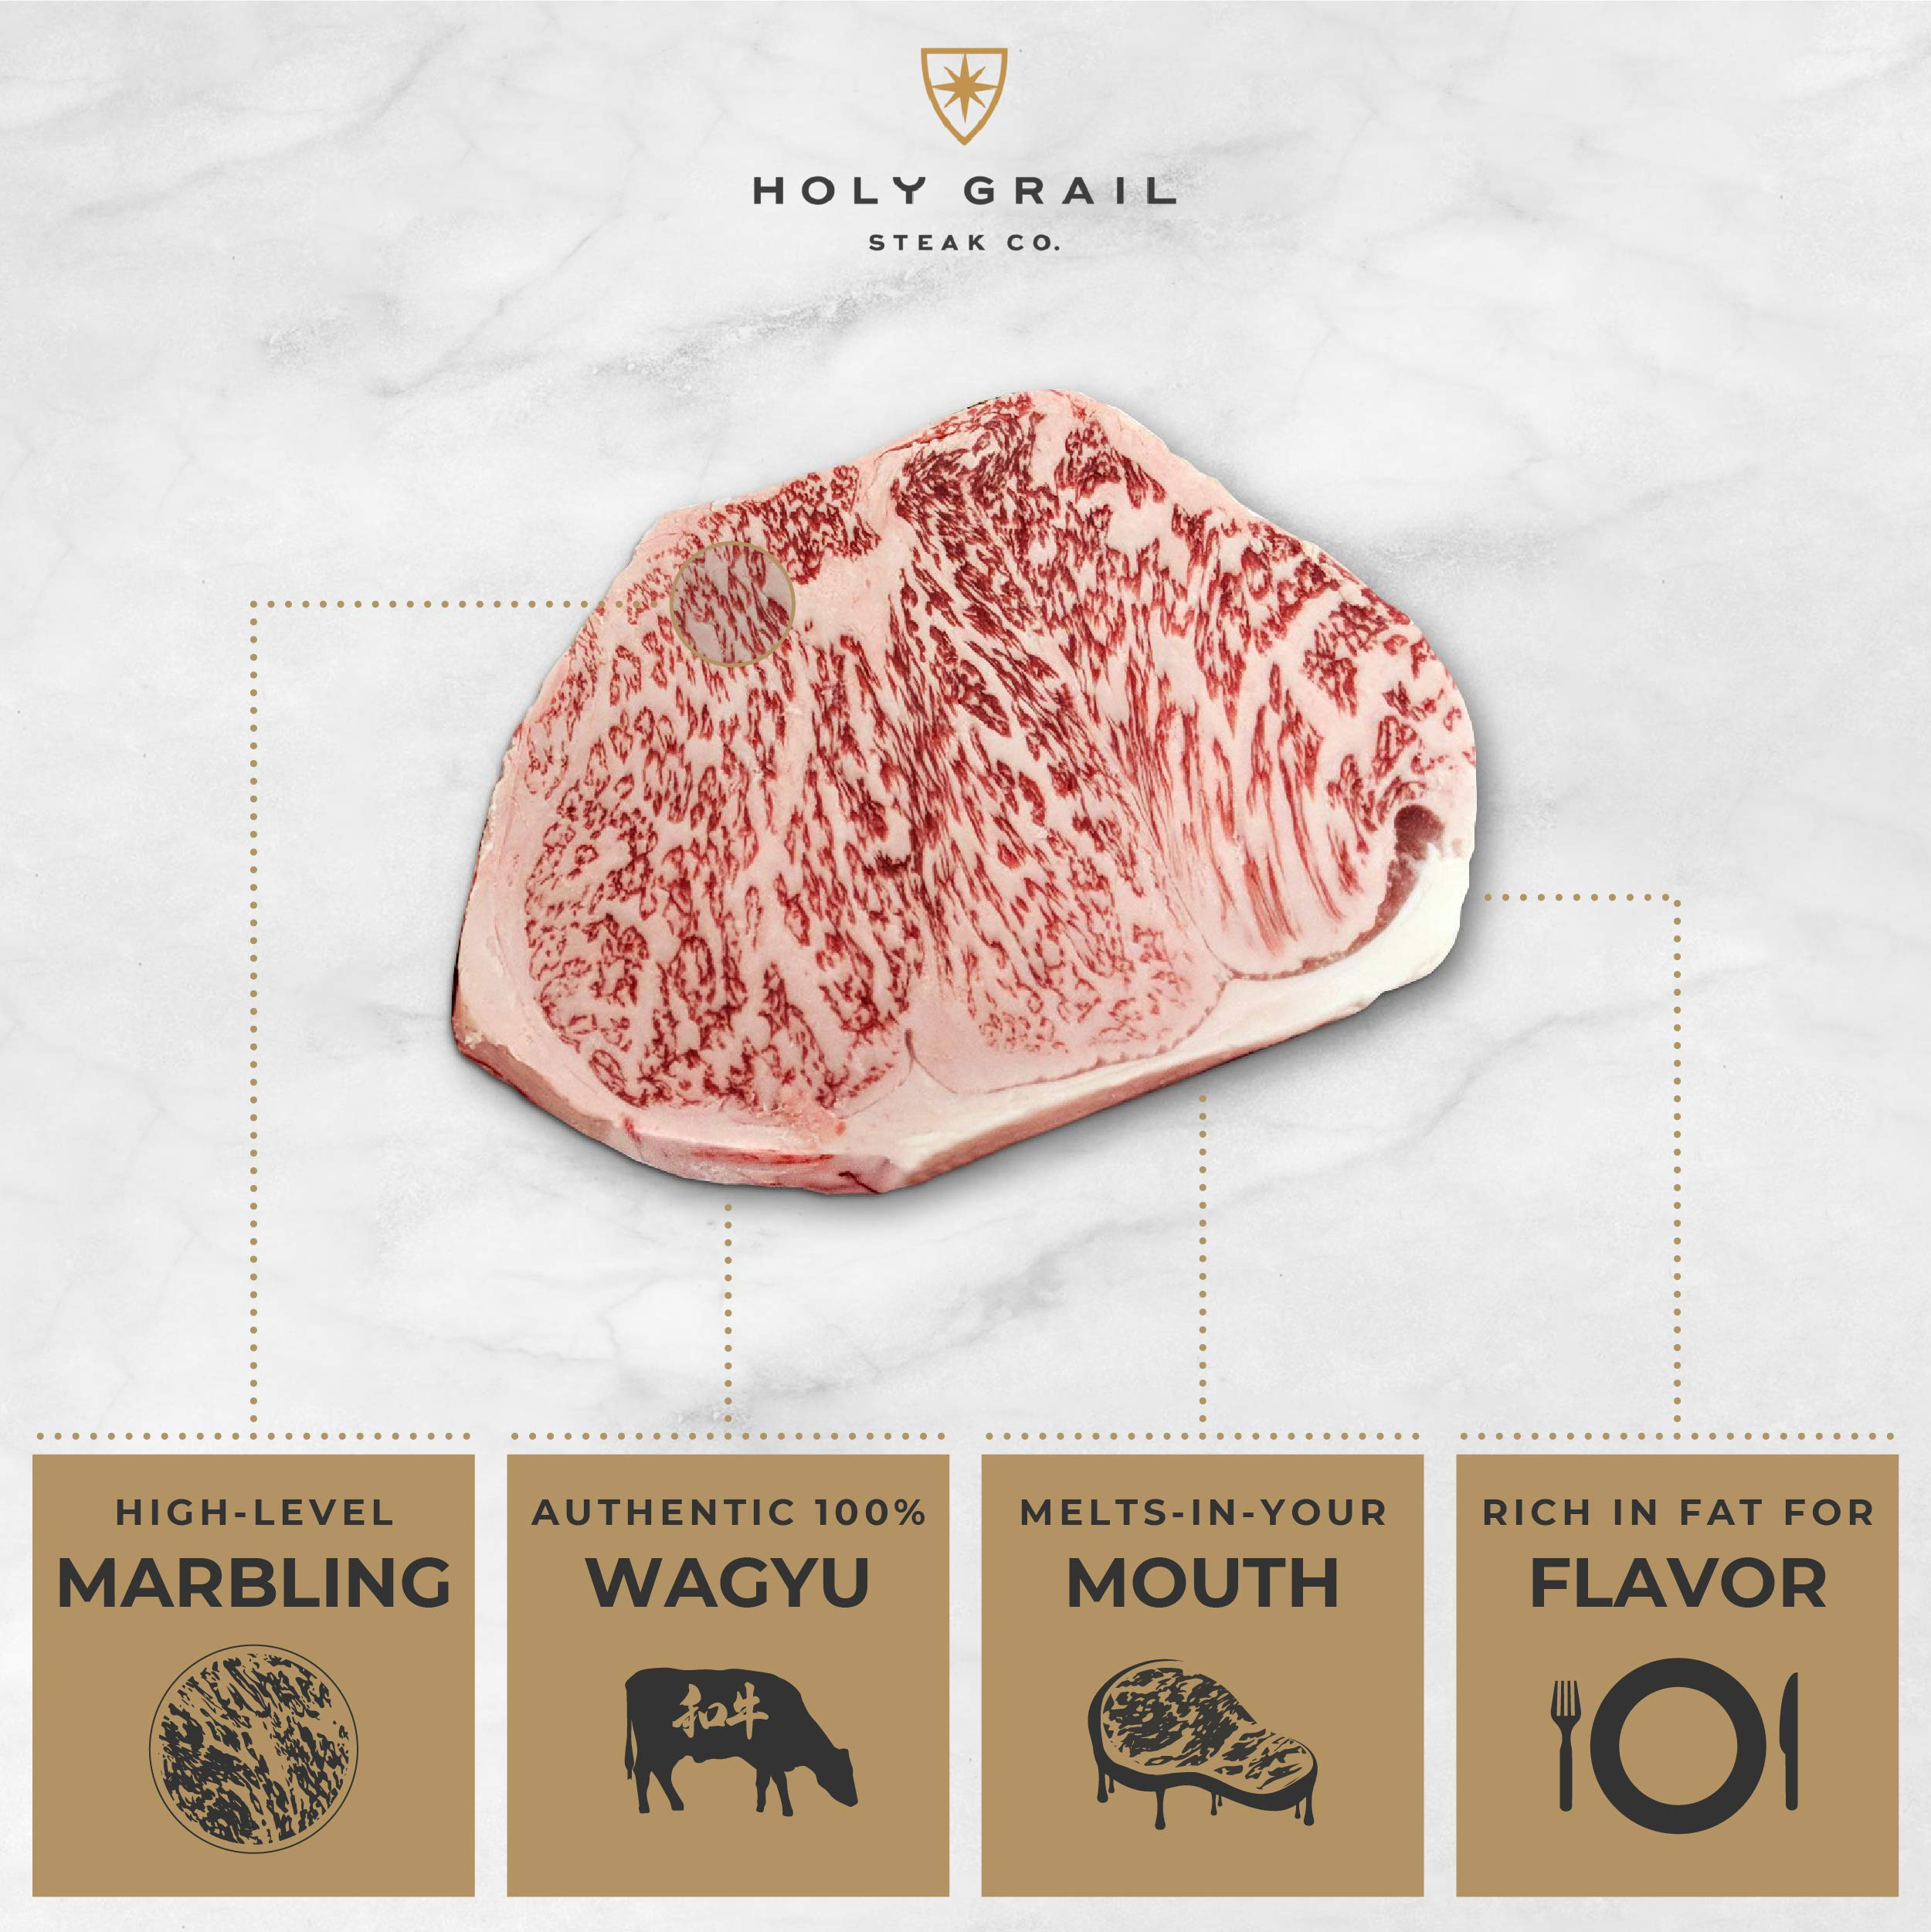 Holy Grail Steak Company, A5 Grade, Genuine Kobe Ribeye, Japanese Wagyu Beef (13-15 oz.) by Holy Grail Steak Company (Image #7)